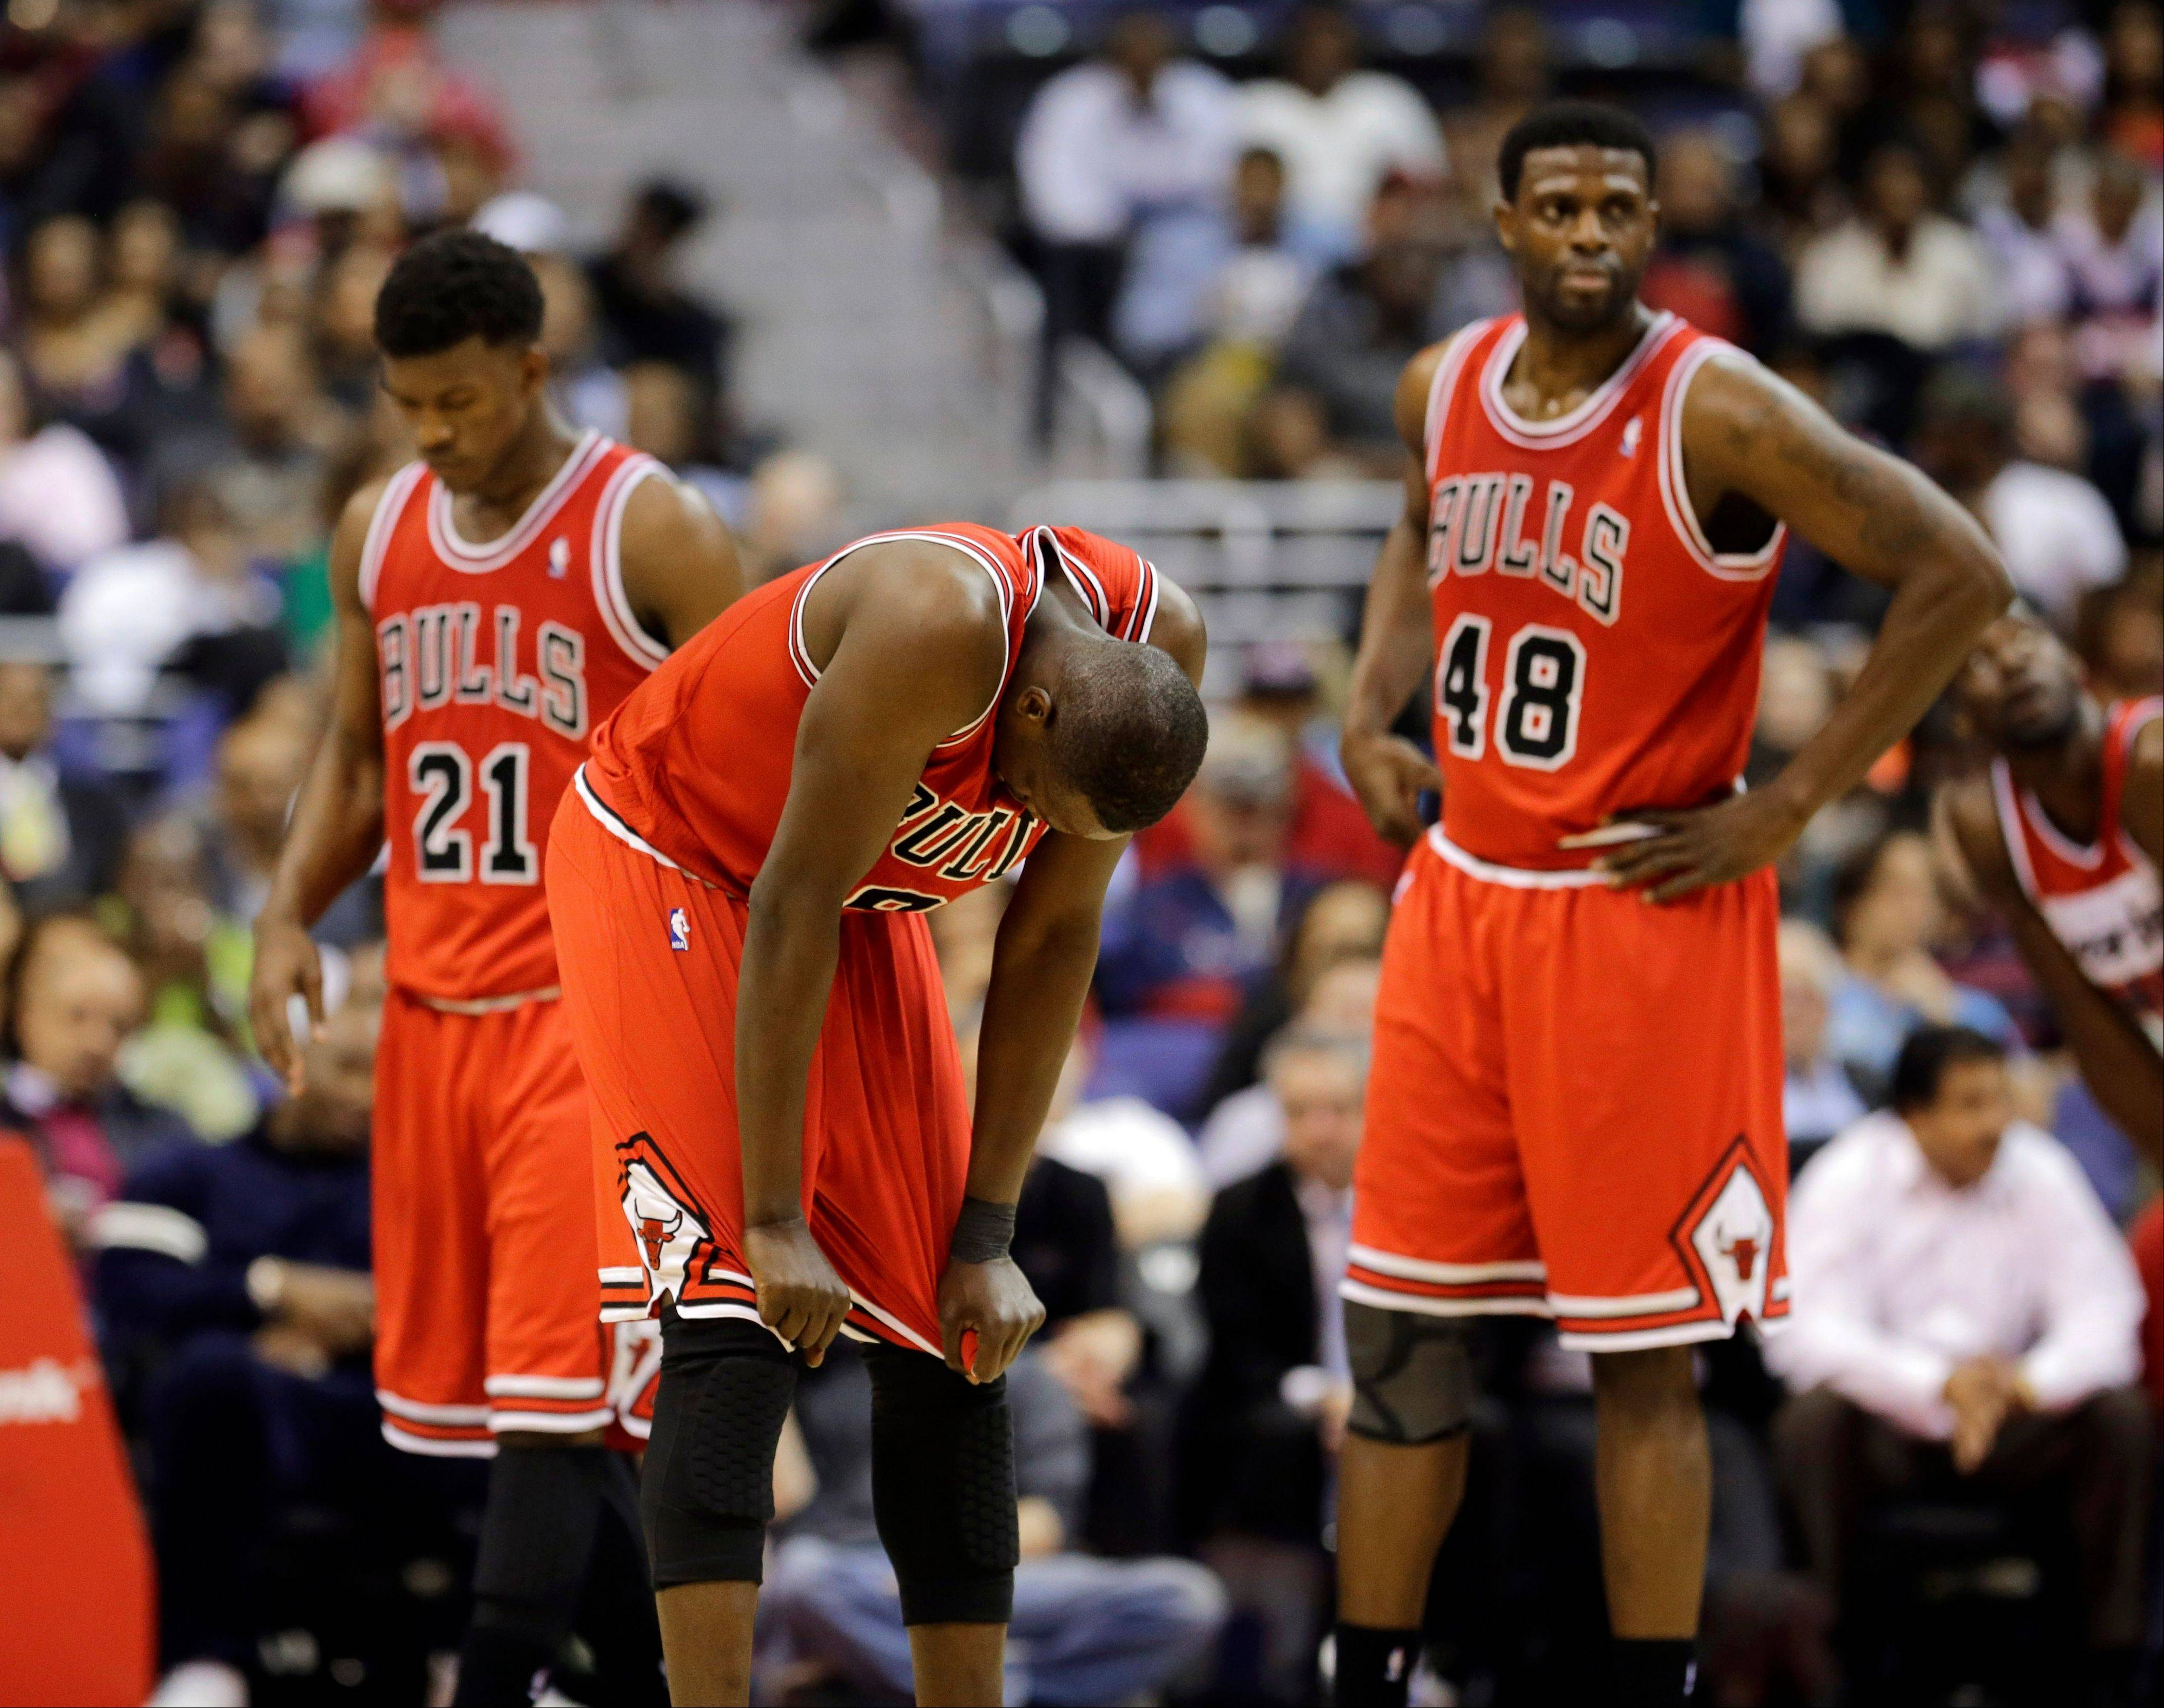 Jimmy Butler (21), forward Luol Deng (9), from Sudan, and center Nazr Mohammed (48) pause on the court during a break in the action in the second half of the Bulls' loss to Washington on Tuesday.